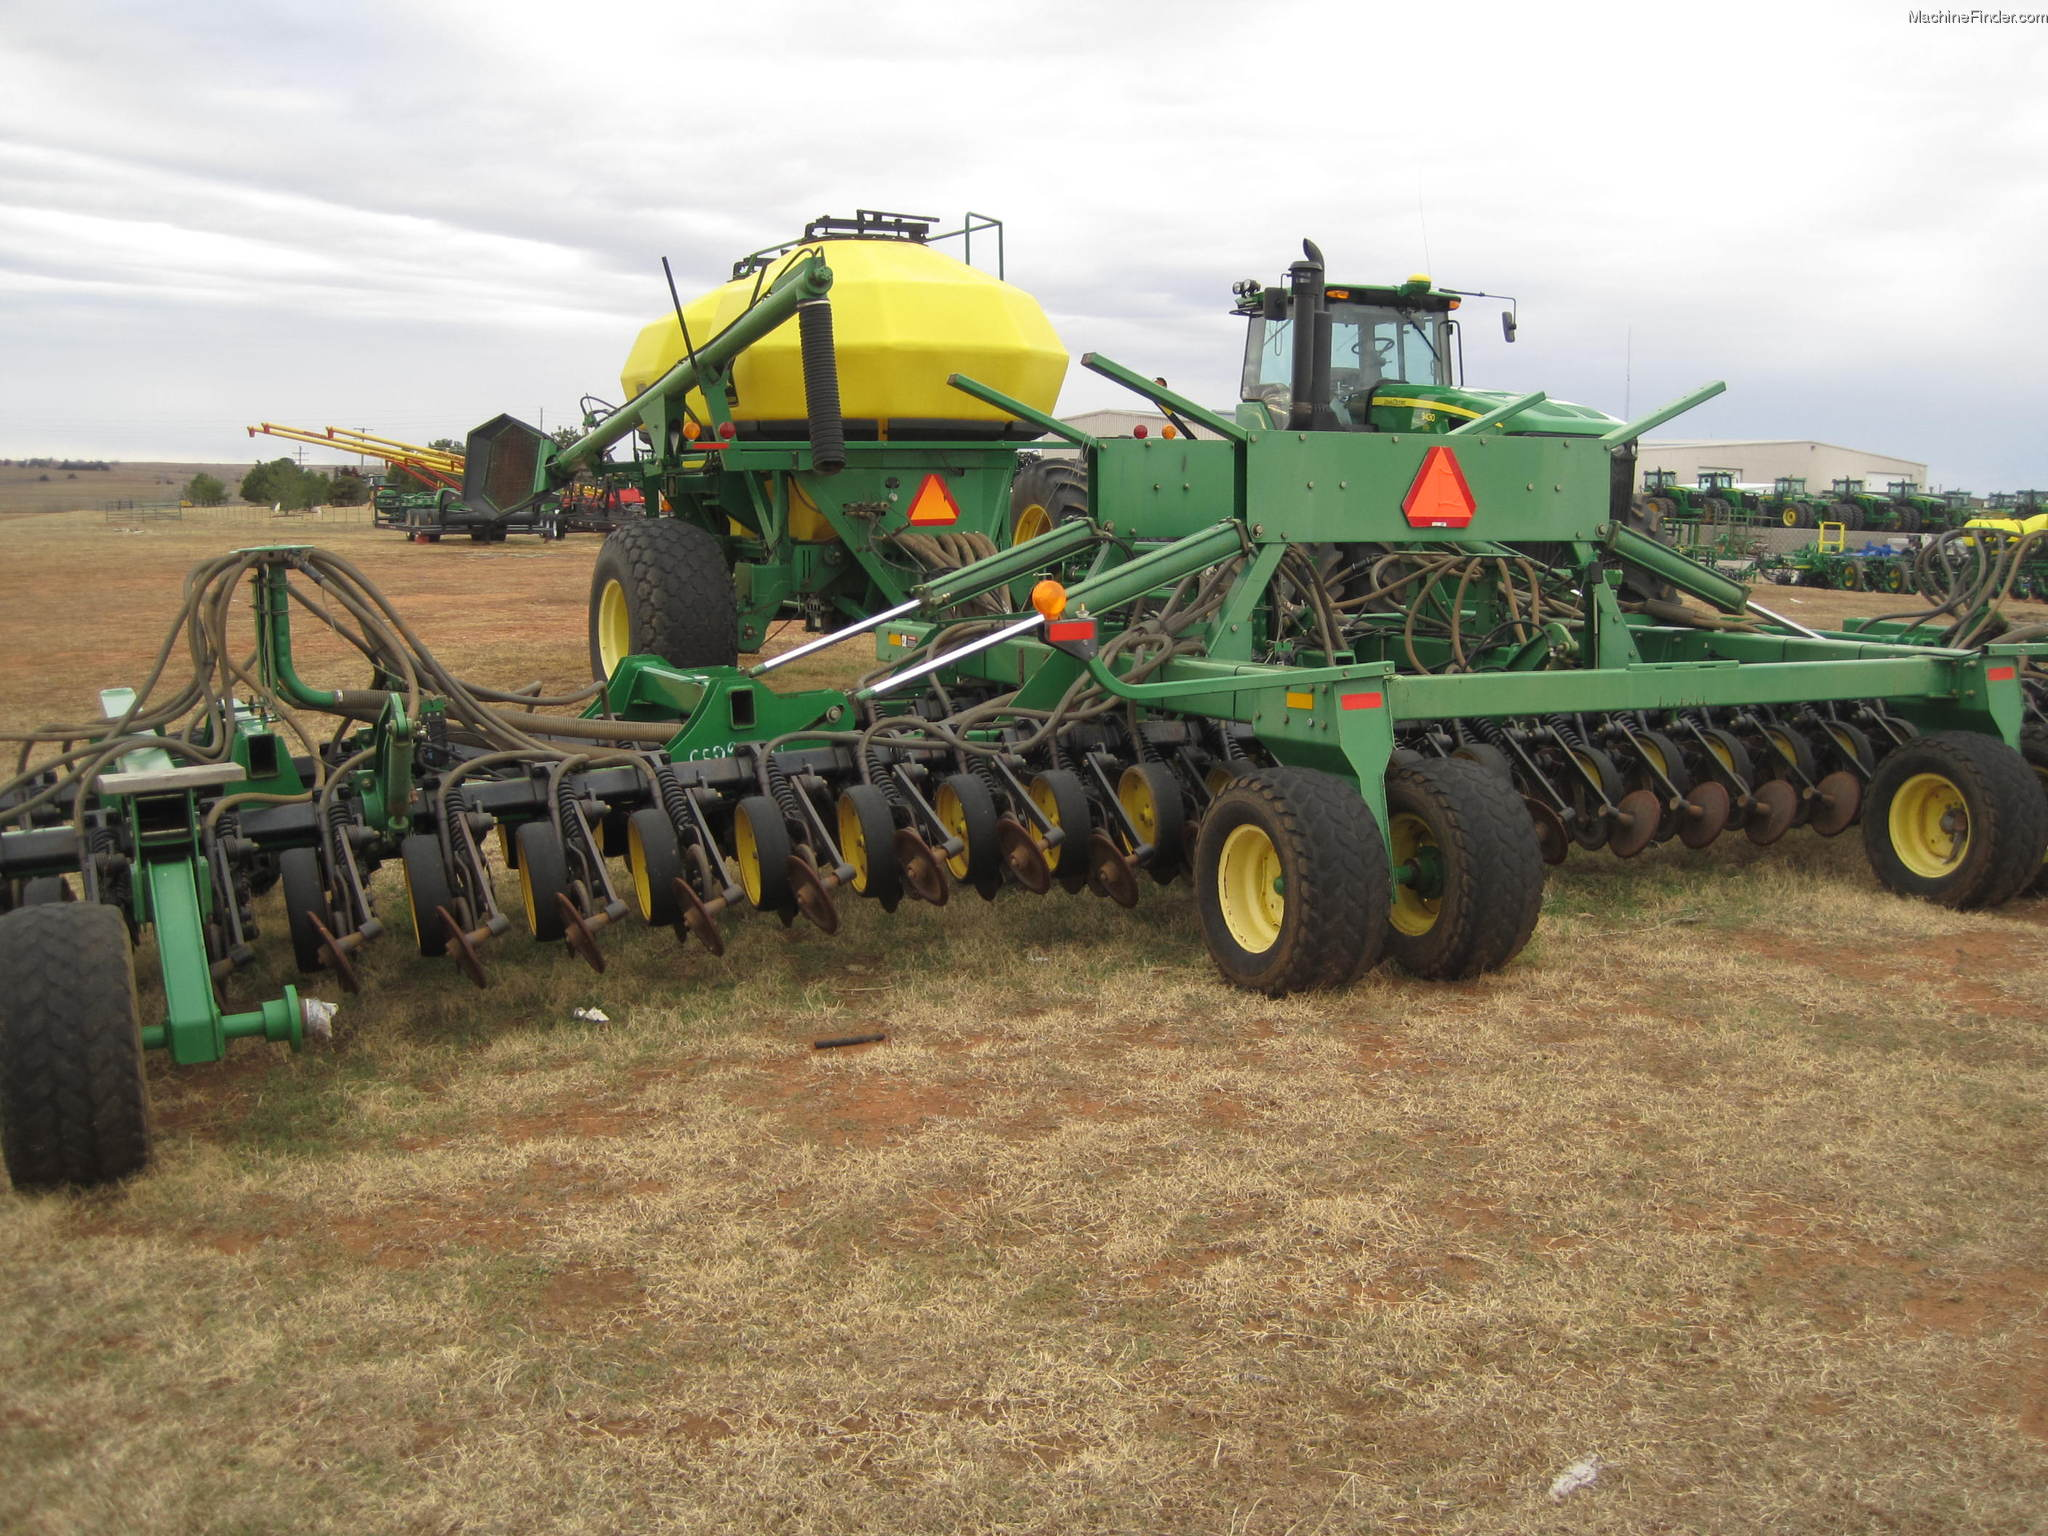 1997 John Deere 1850 Planting & Seeding - Air Drills ...